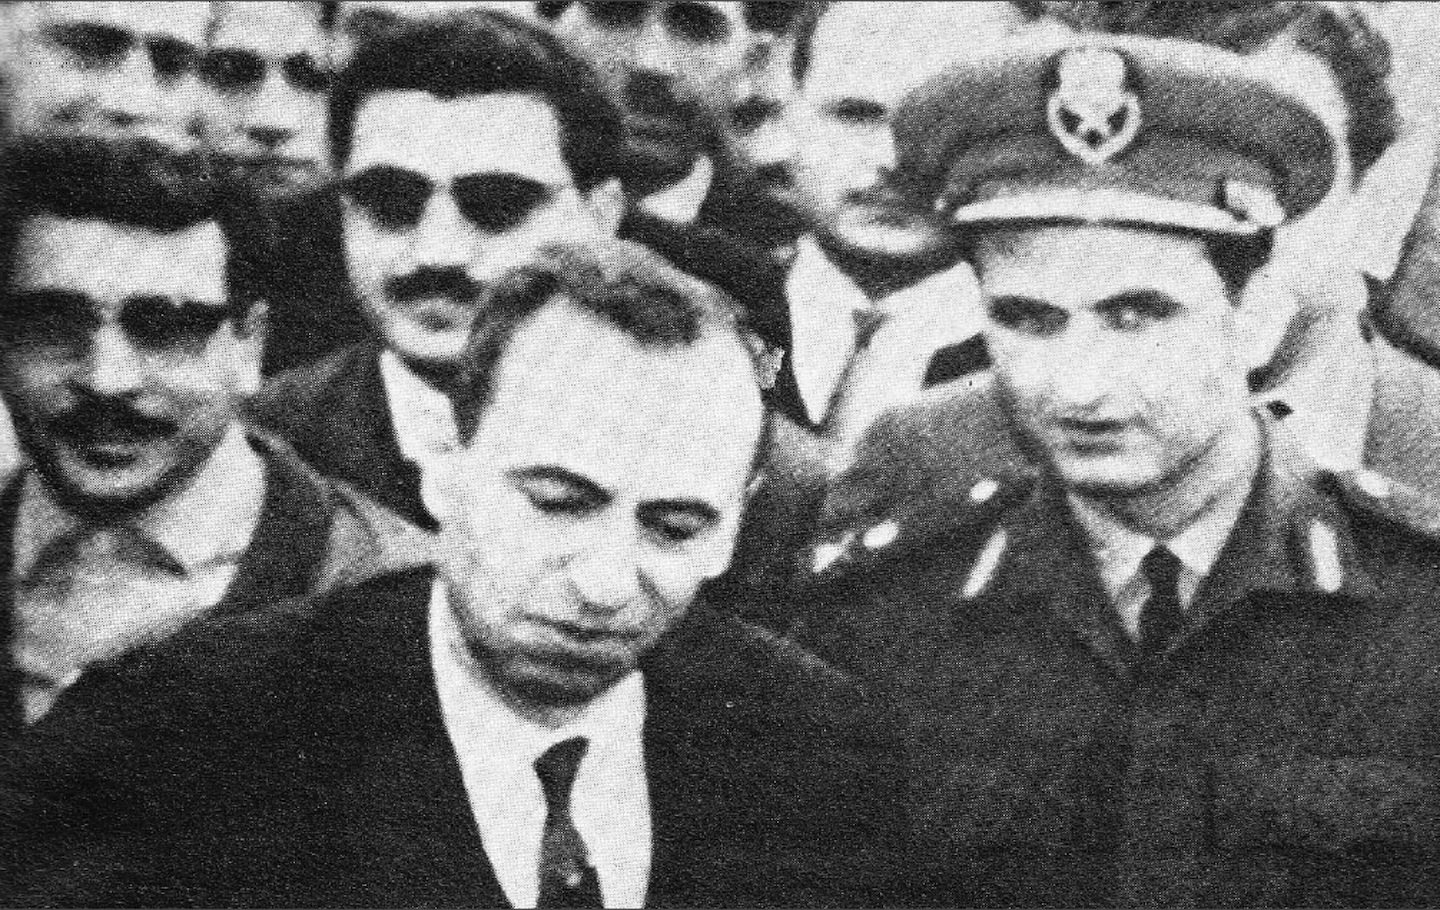 Ba'ath Party members Michel Aflaq (left) and Salah Jadid (right) in 1963,  the latter was a senior figure in planning the coup d'etat.